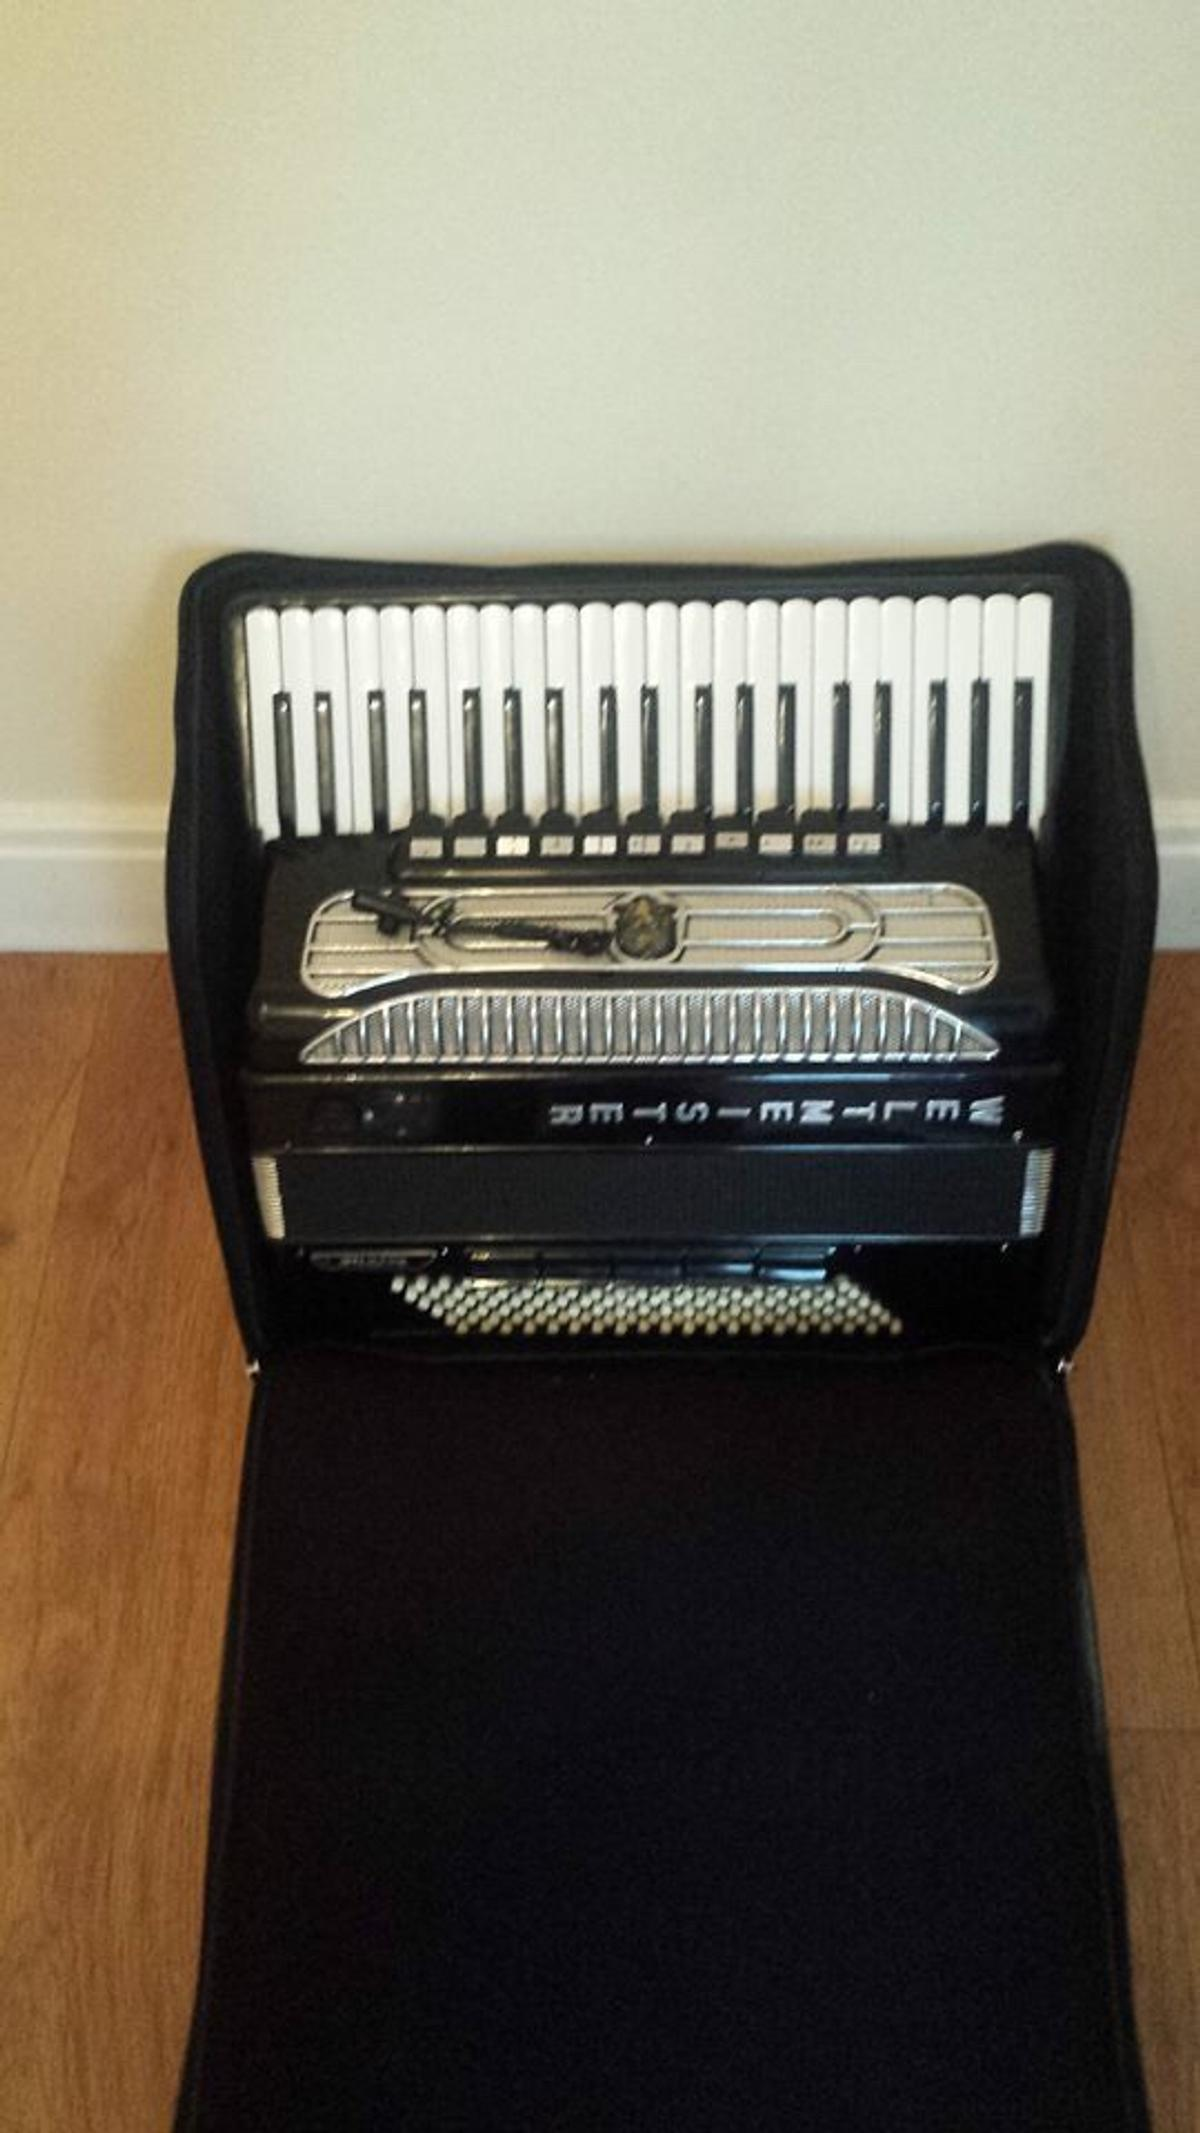 Accordion weltmeister supita for sale in CR7 London for £1,555 00